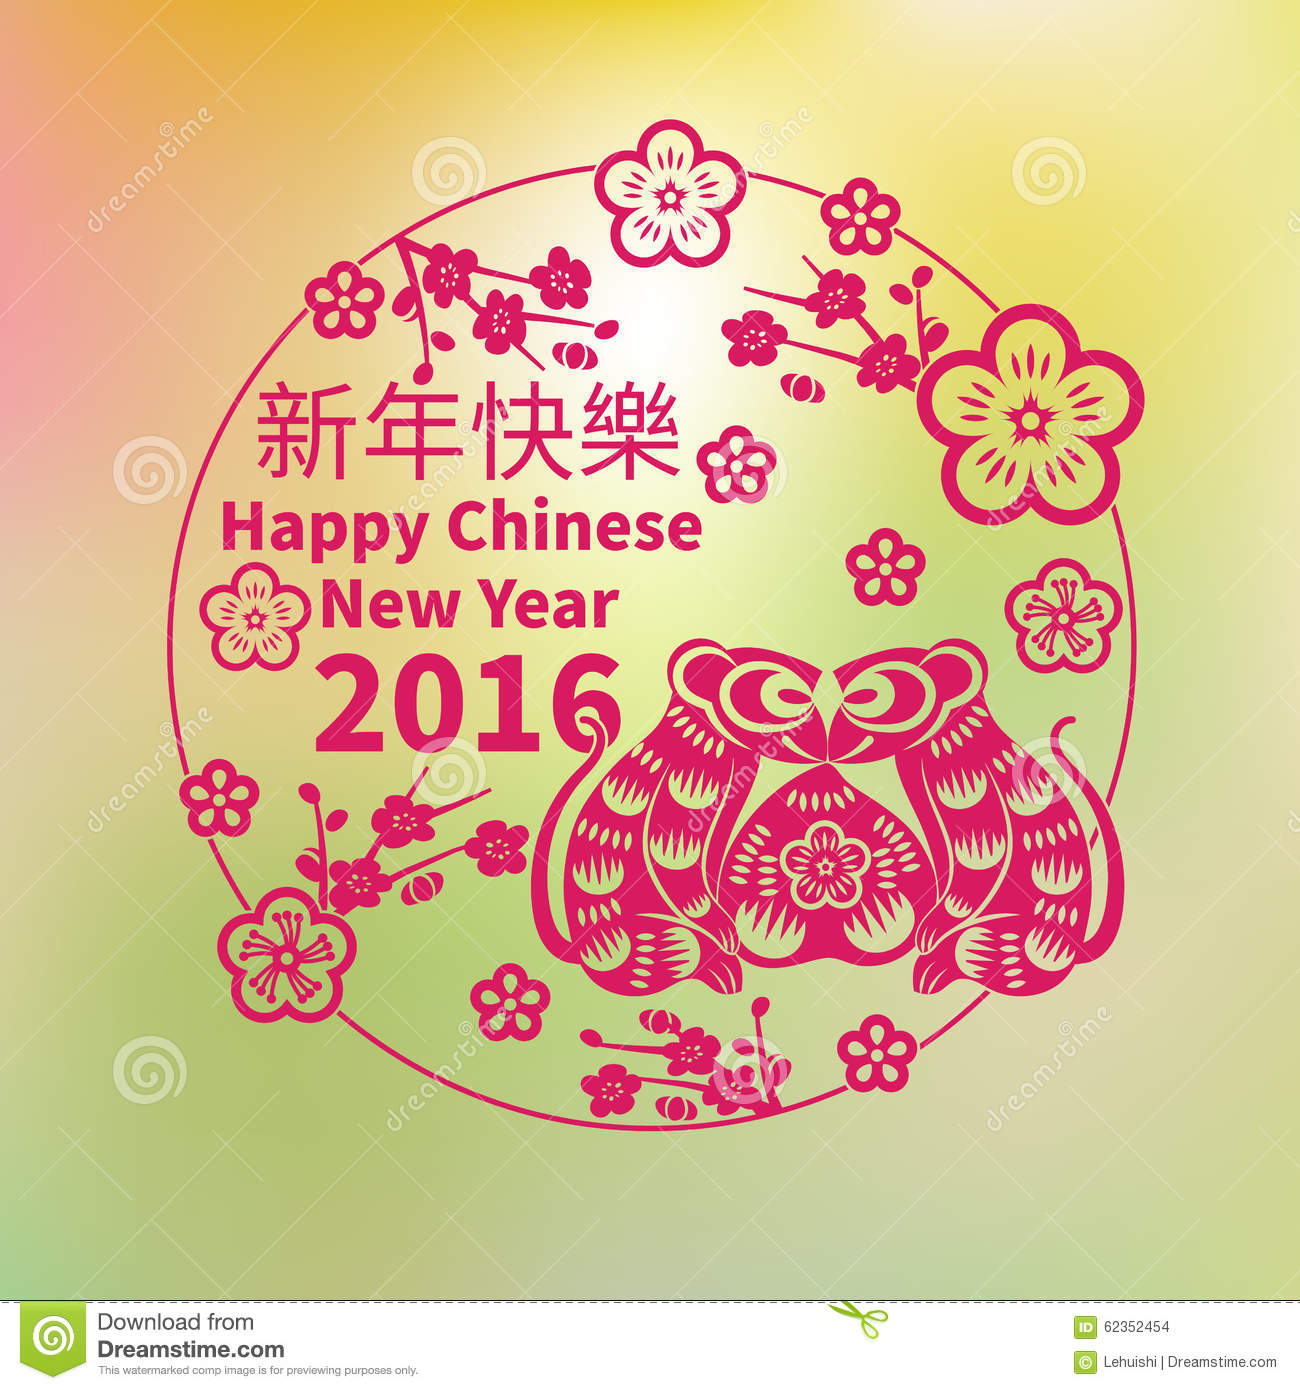 Happy New Year Essay for Children, Kids and Students